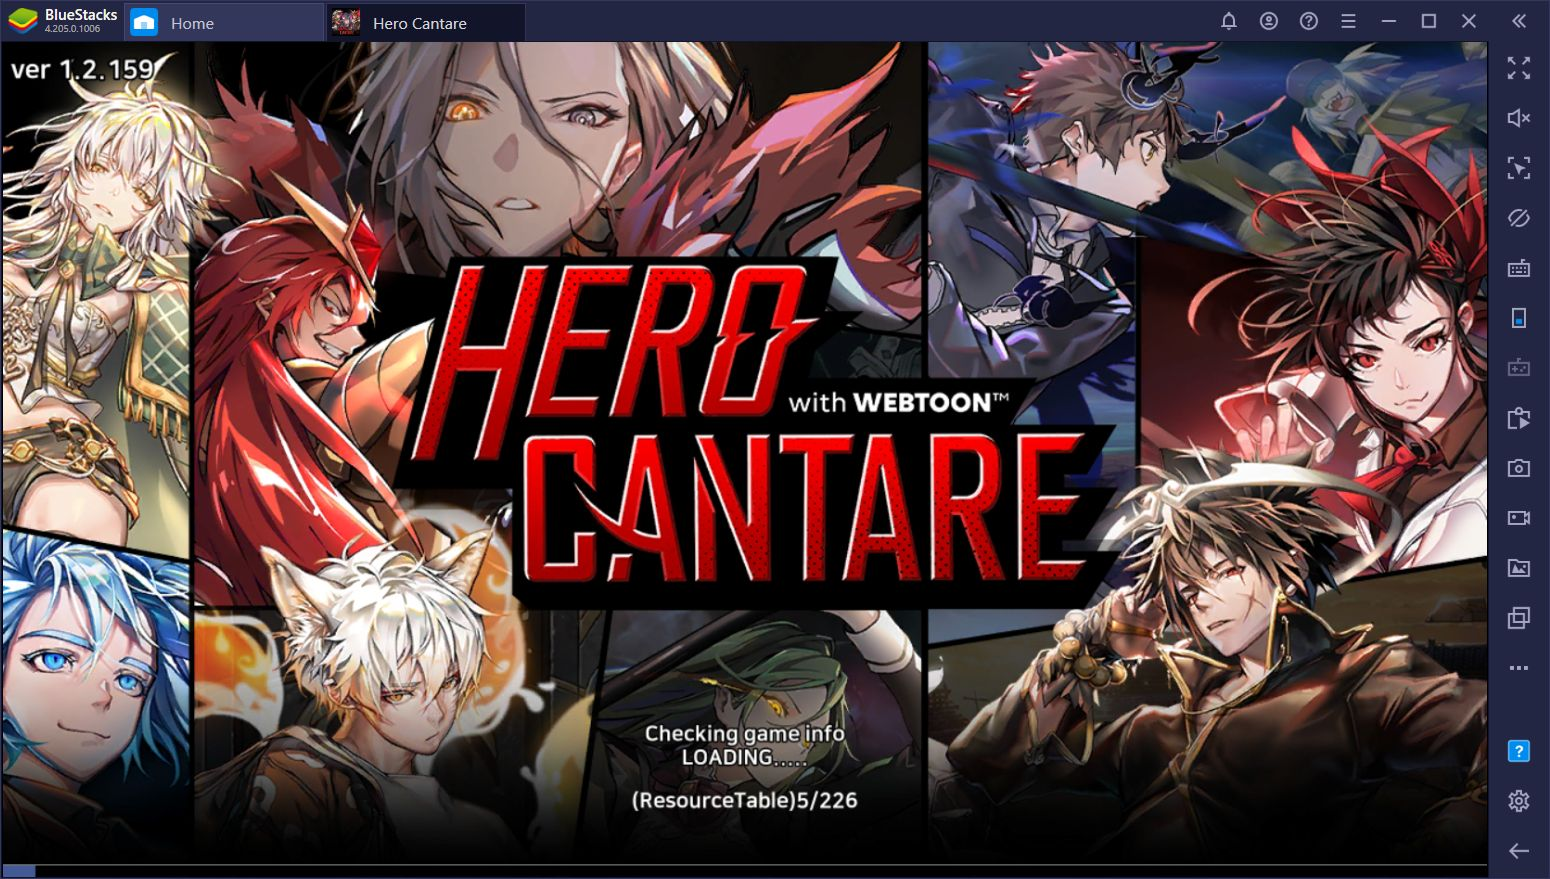 Beginner's Guide for Hero Cantare With WEBTOON